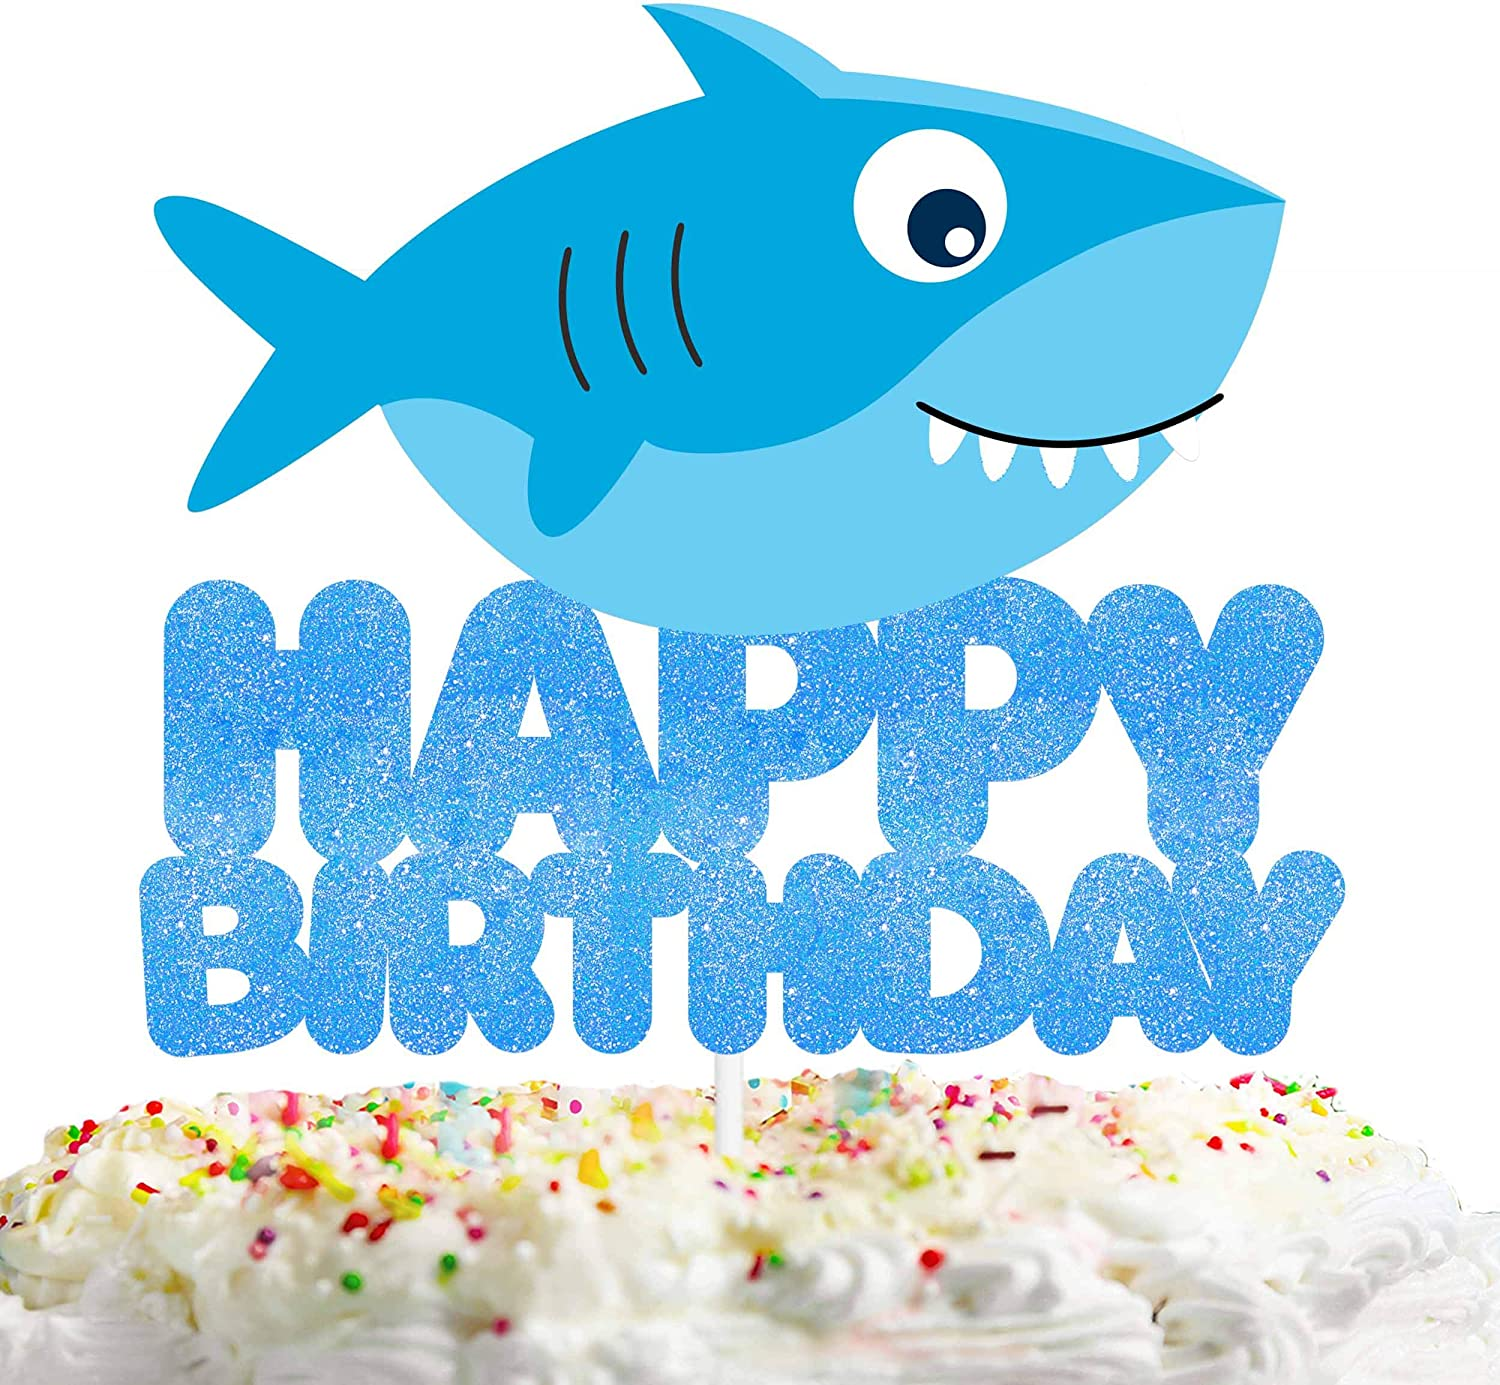 Shark Happy Birthday Cake Topper Decorations for Ocean Theme Picks for Baby Shower Party Decor Supplies